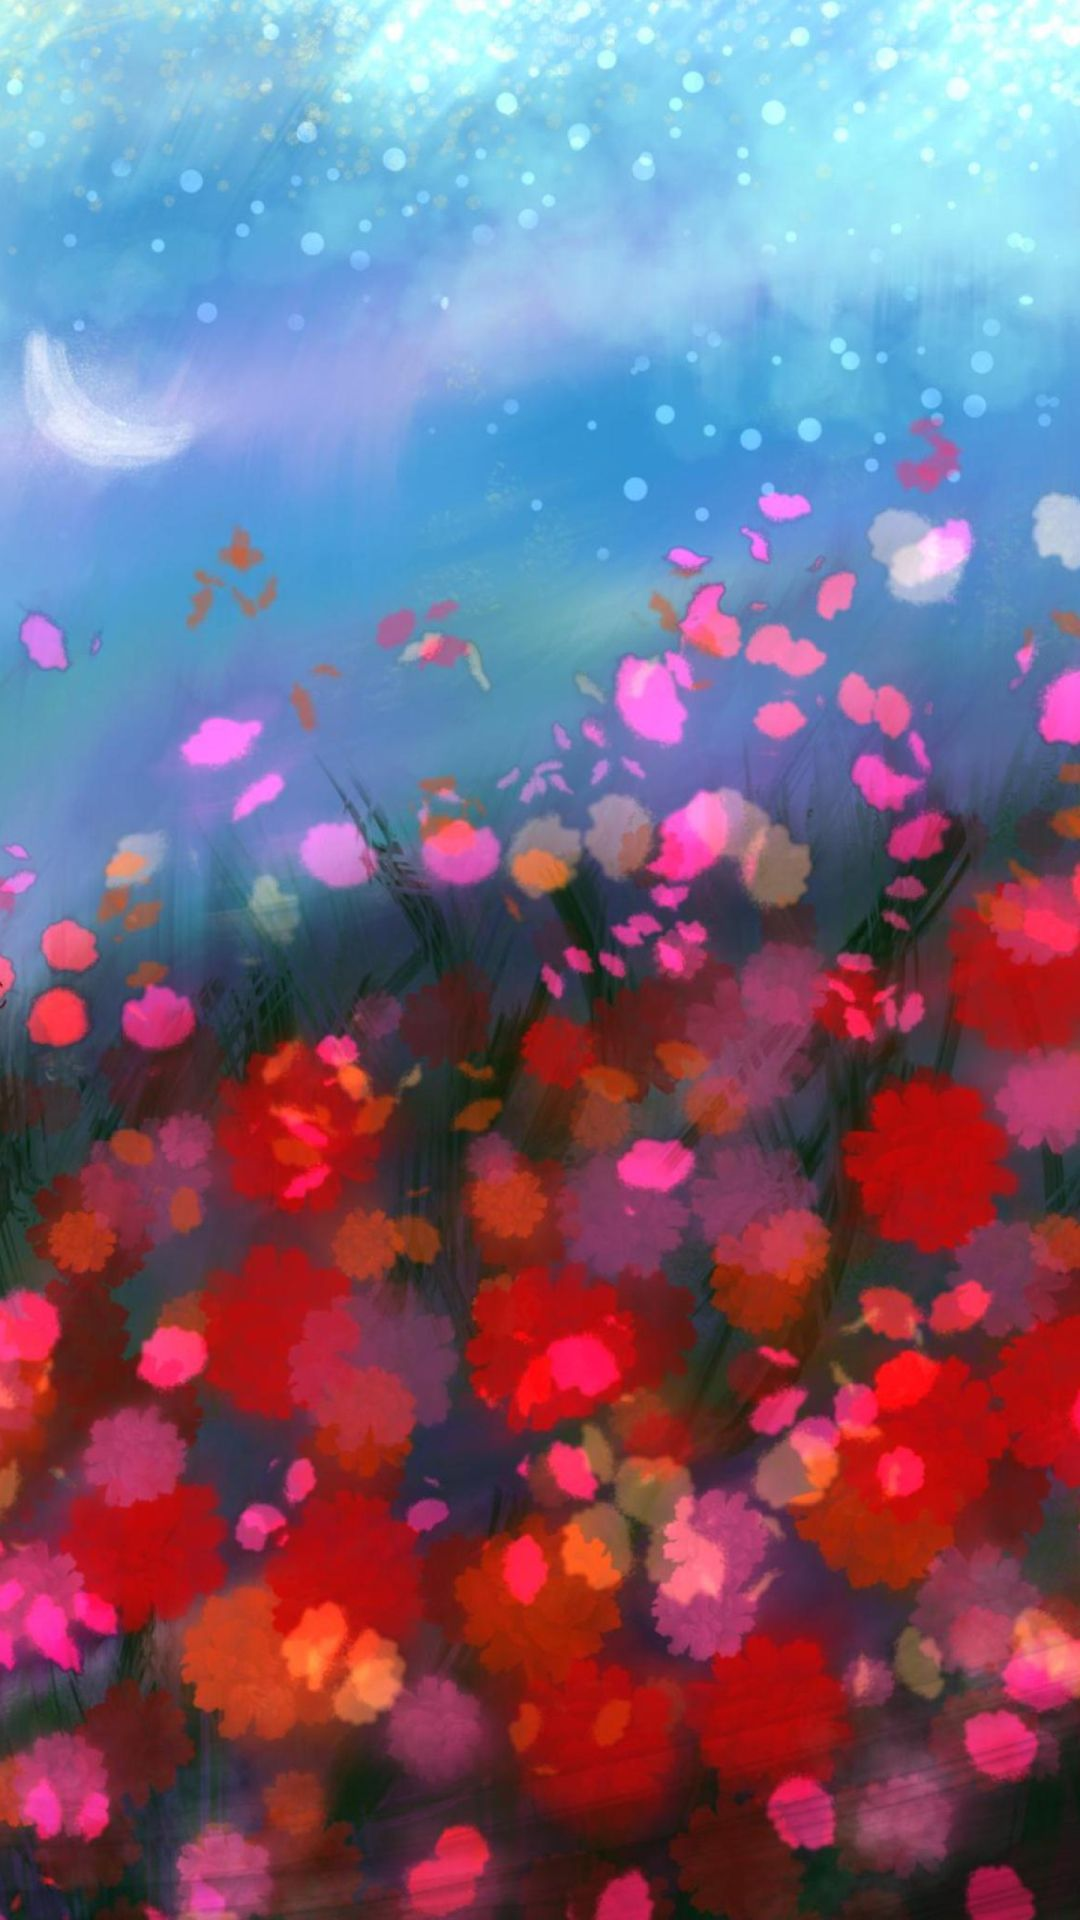 Painting flowers on the field background mightylinksfo